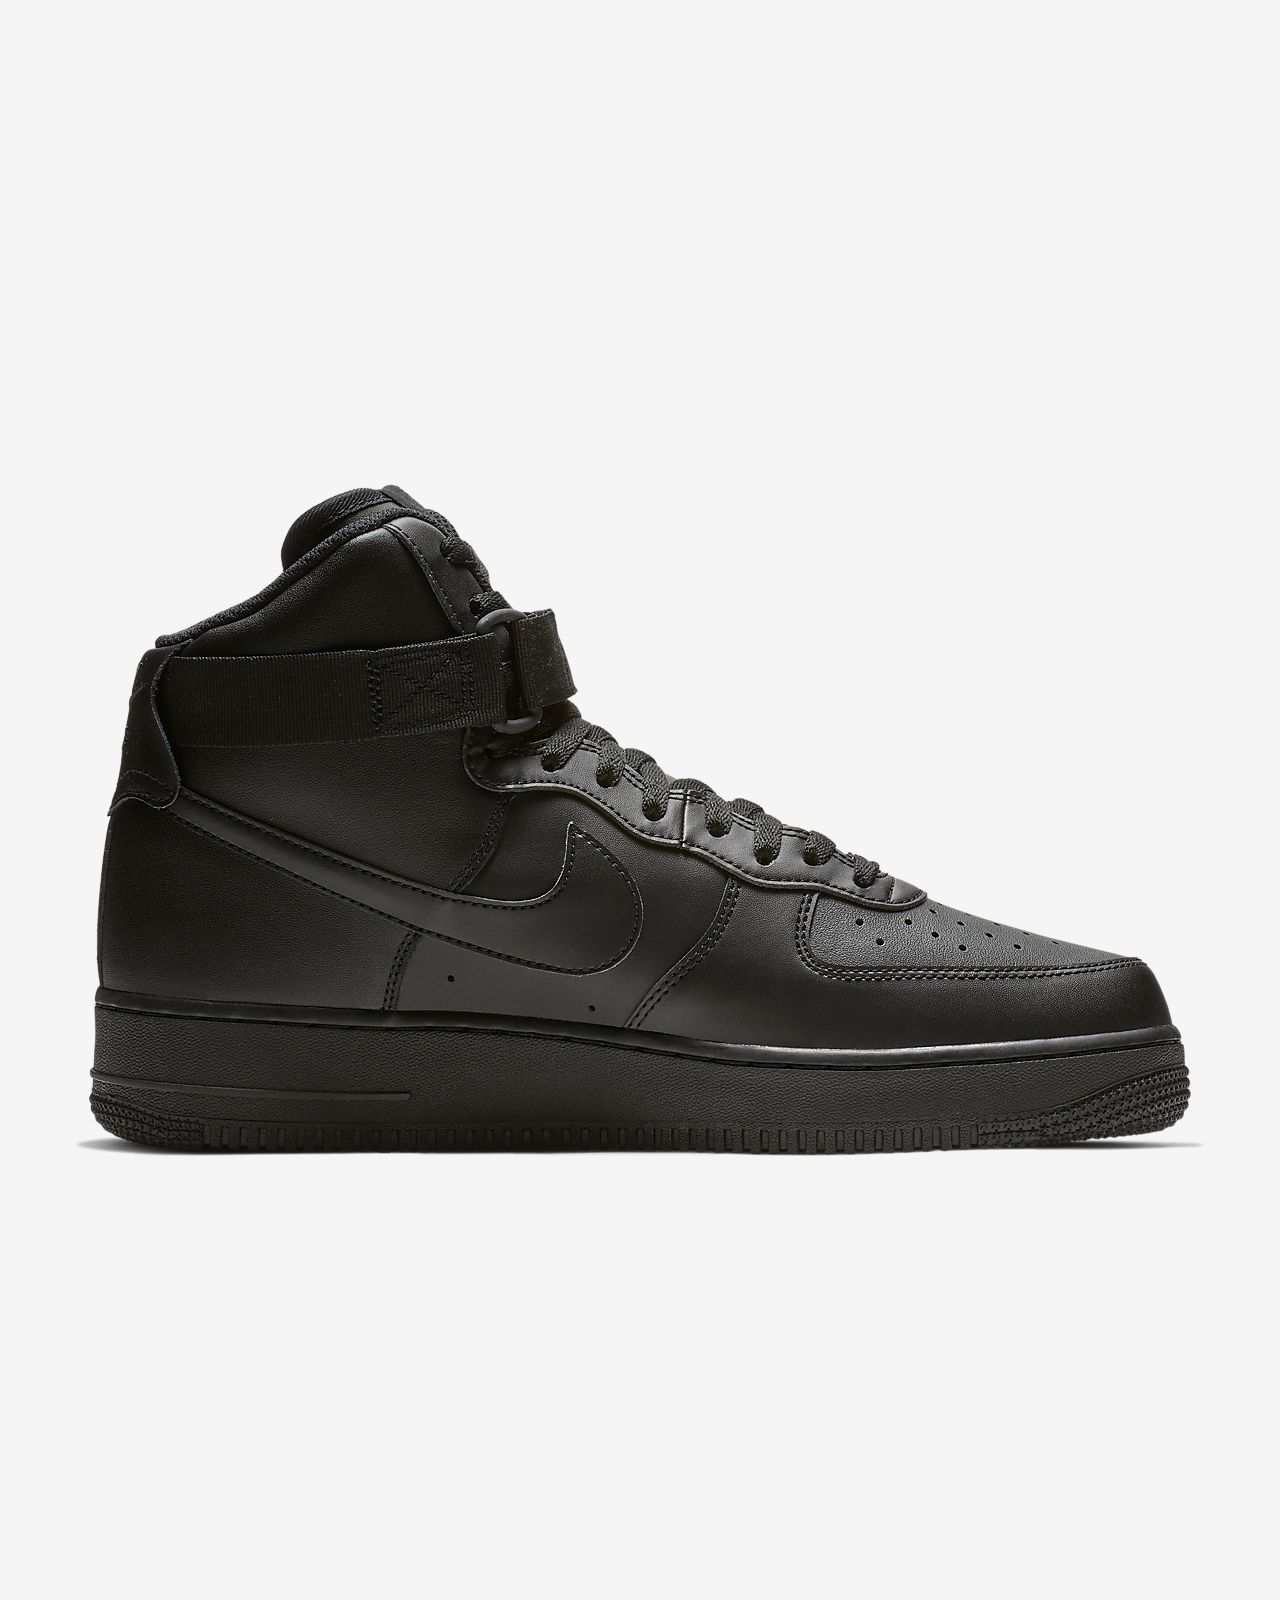 promo code 225c3 c51e0 ... Nike Air Force 1 High 07 Men s Shoe